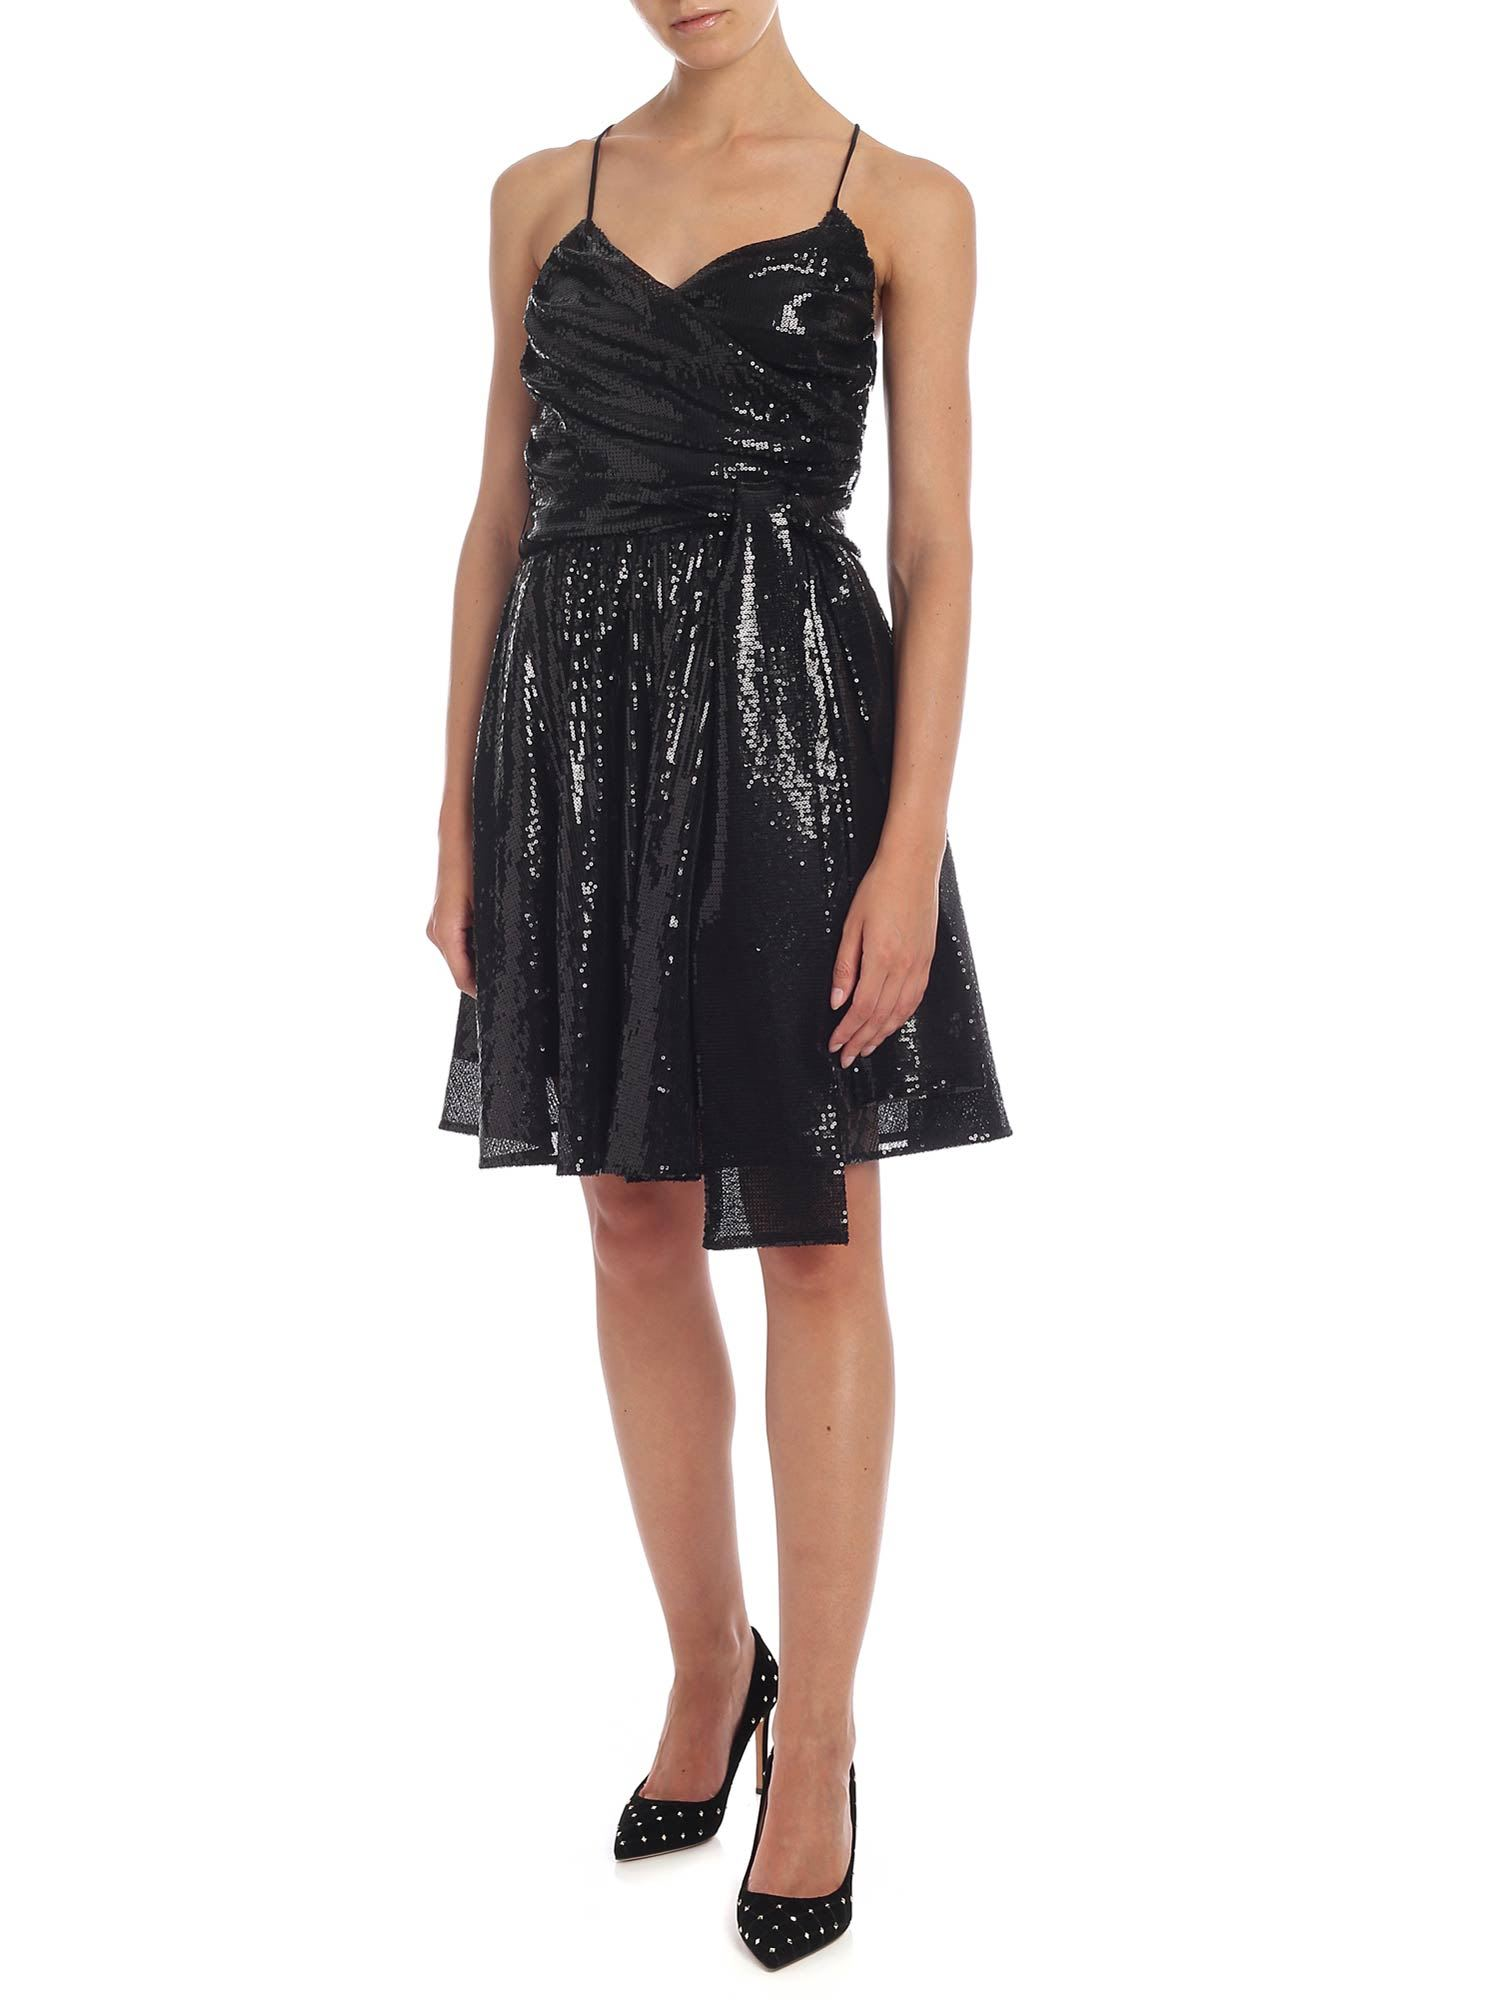 MSGM Black Sequin Dress